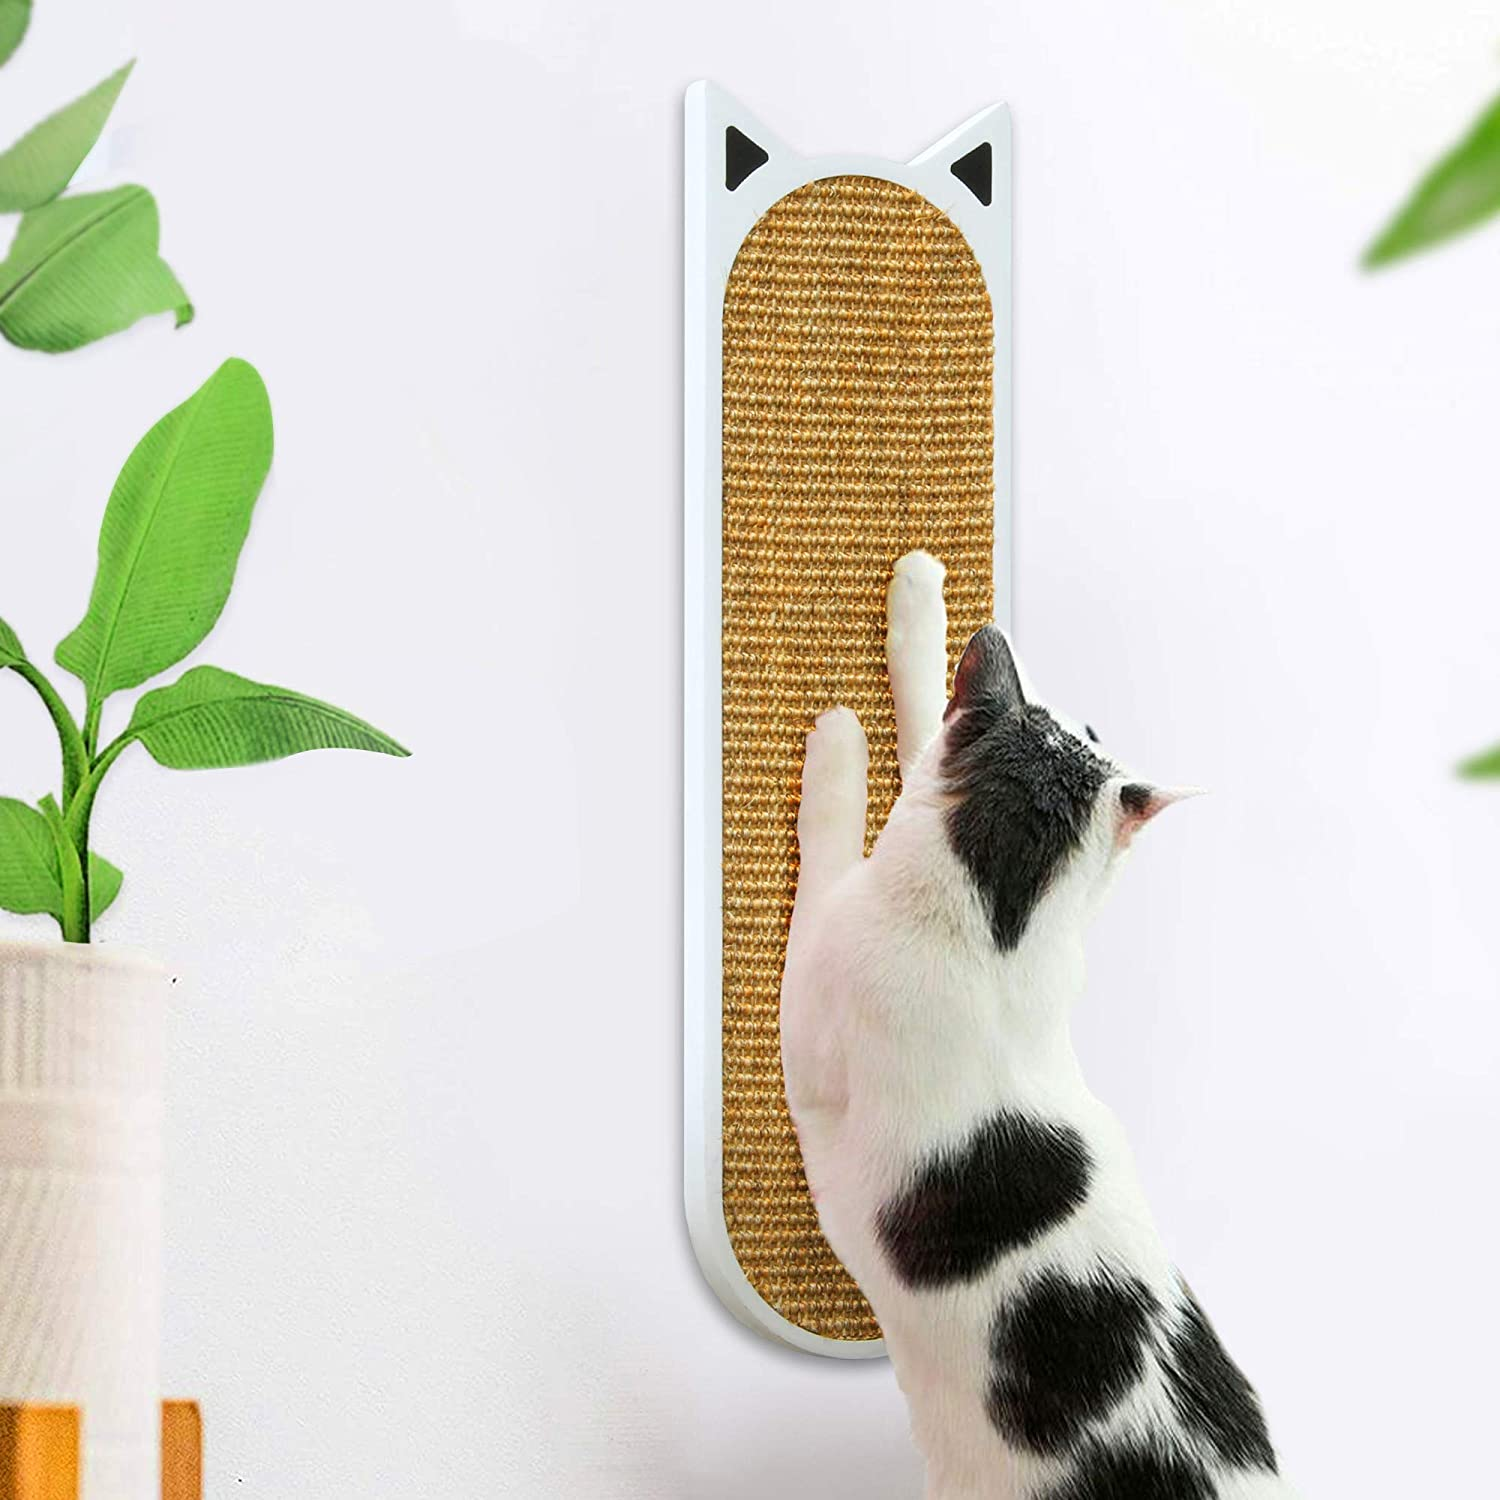 THUNDESK Cat Scratching Post Wall Mounted Cat Scratcher for Improving Kitty's Health and Behavior Cat Scratch for Wall or Floor